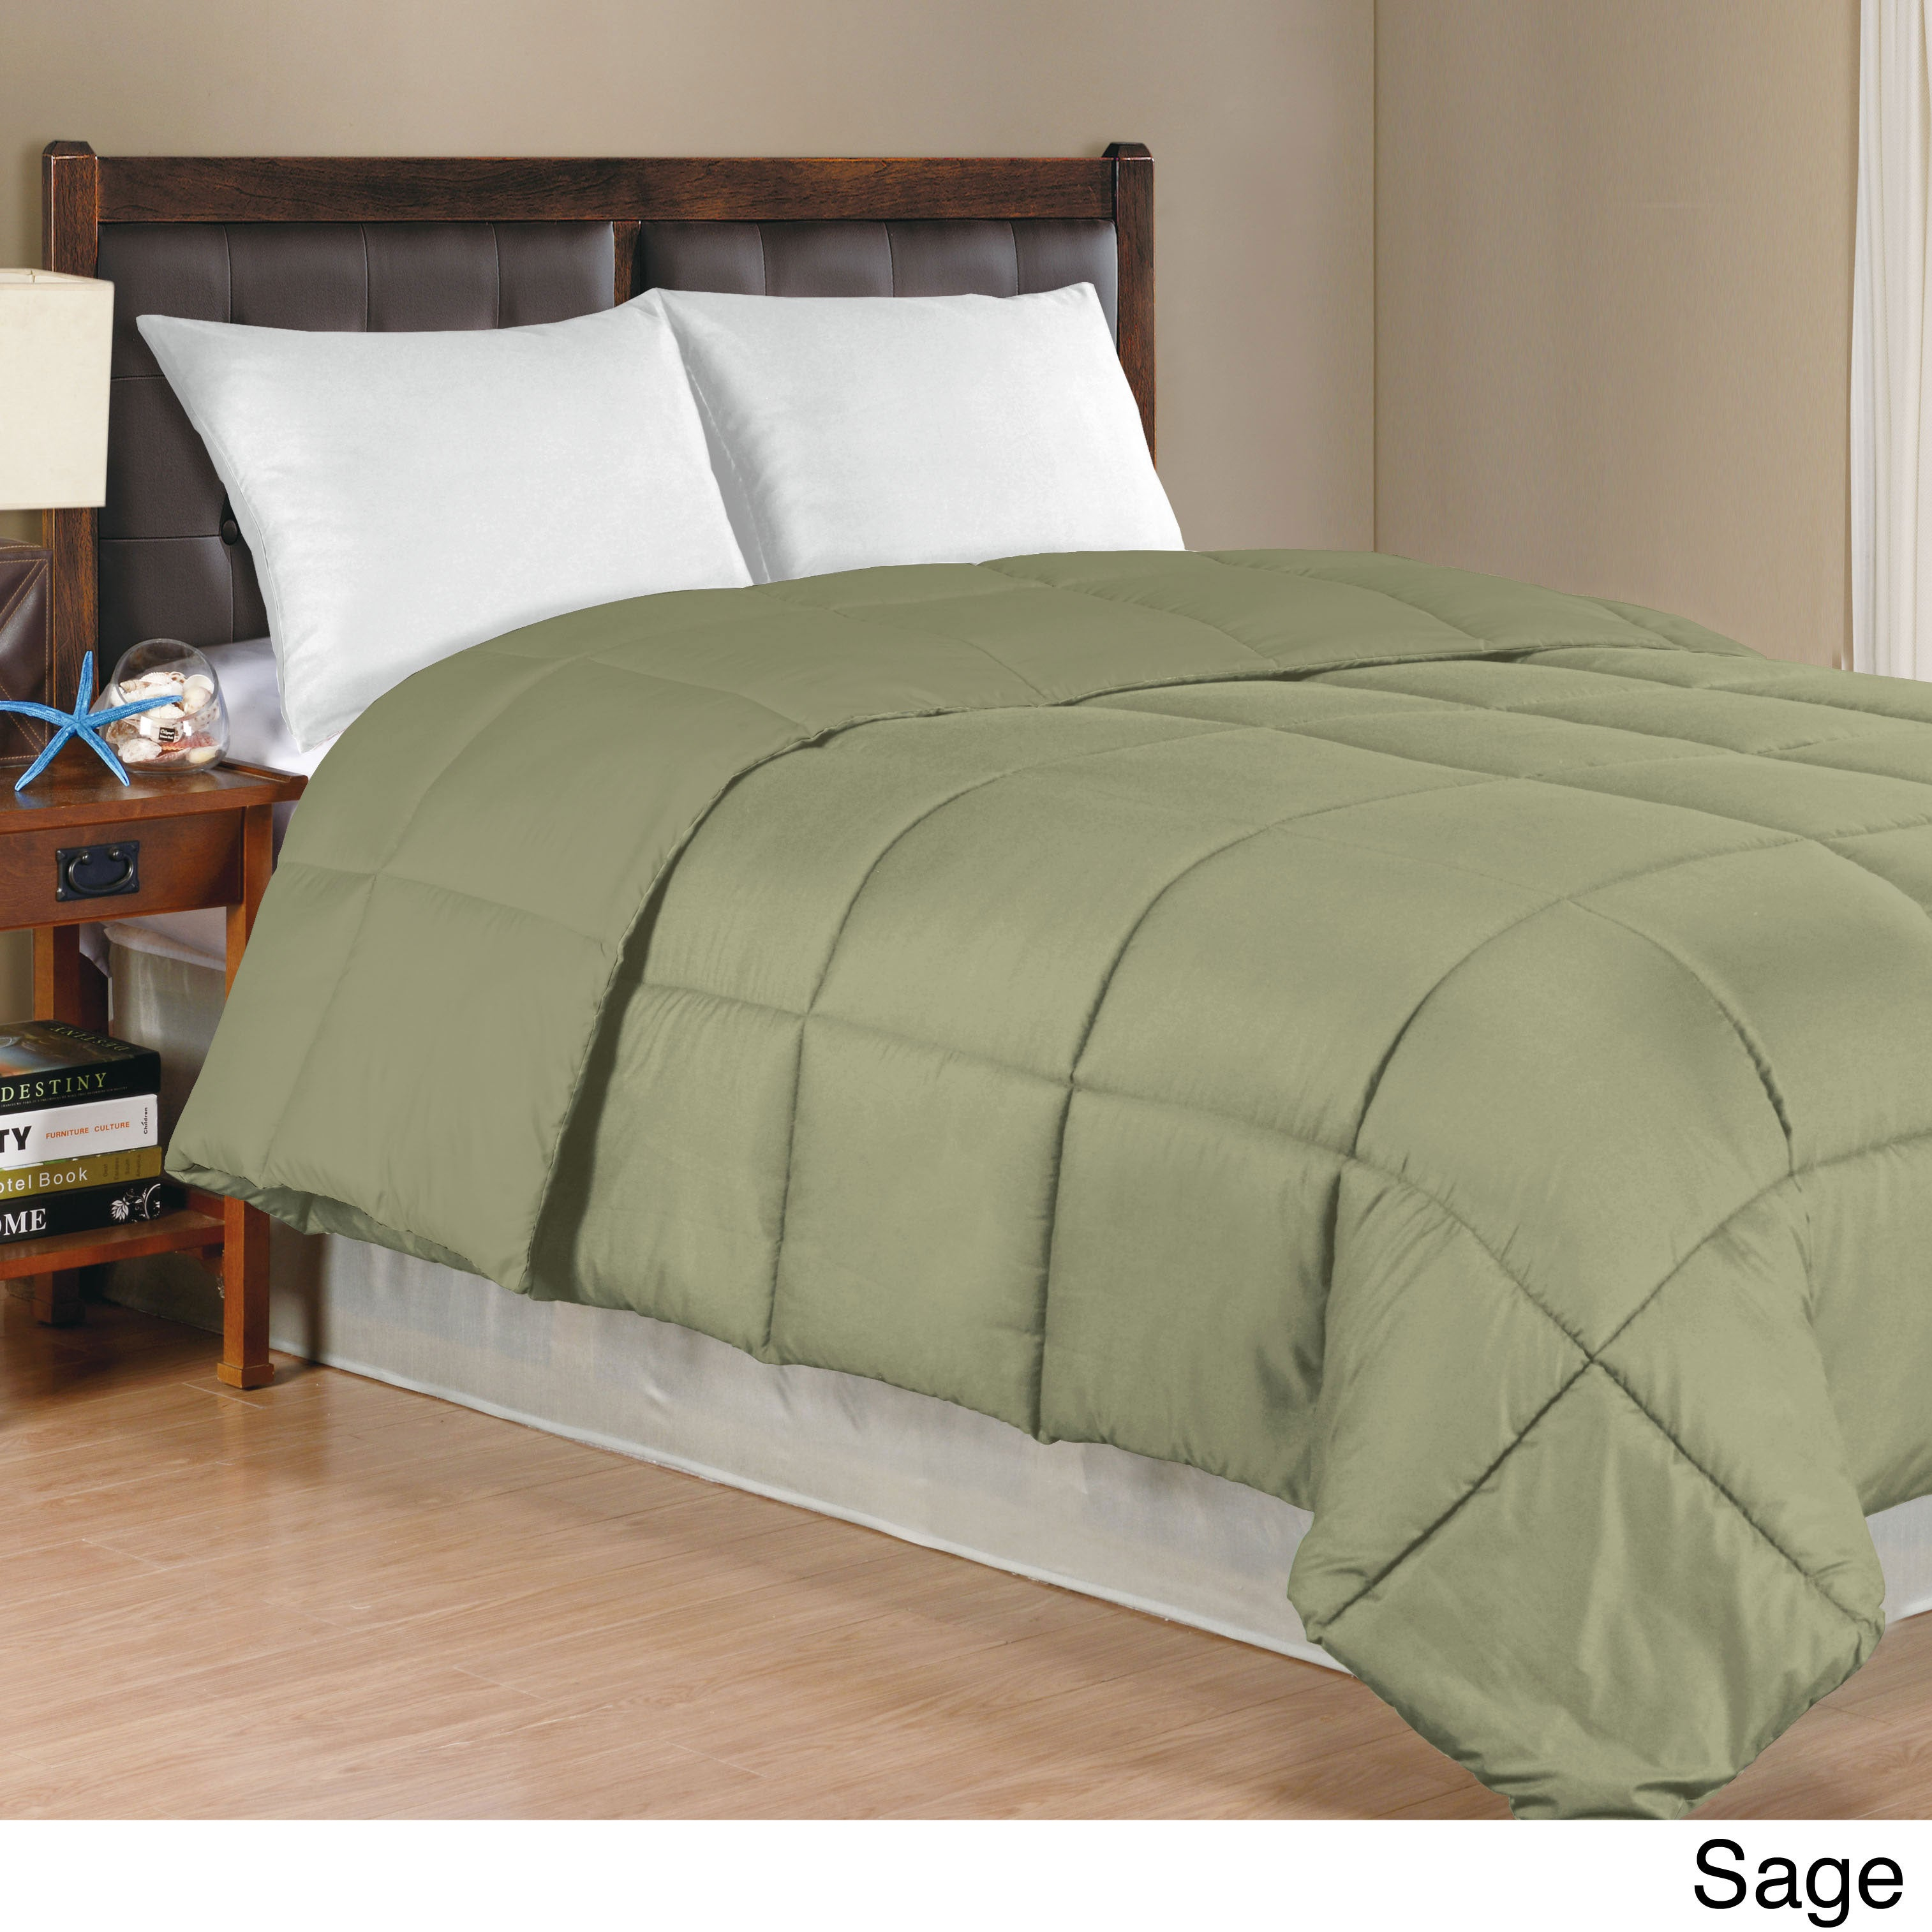 comforter bella down measurements primaloft quilt oversized set queen ruffle size bedspreads alternative king